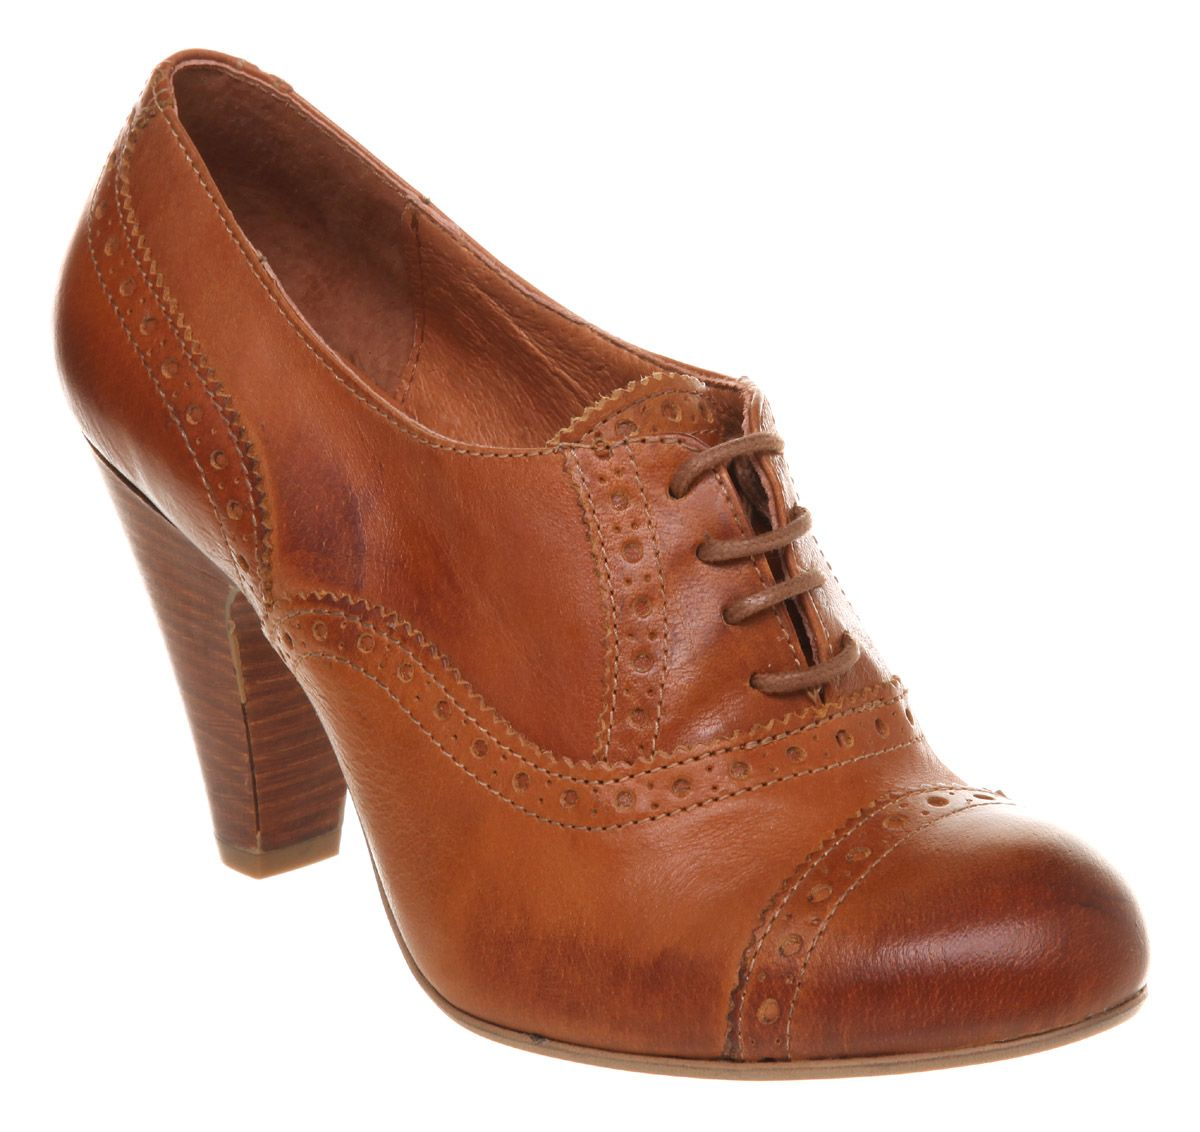 Womens Office Brogue Baby Tan Leather Heels